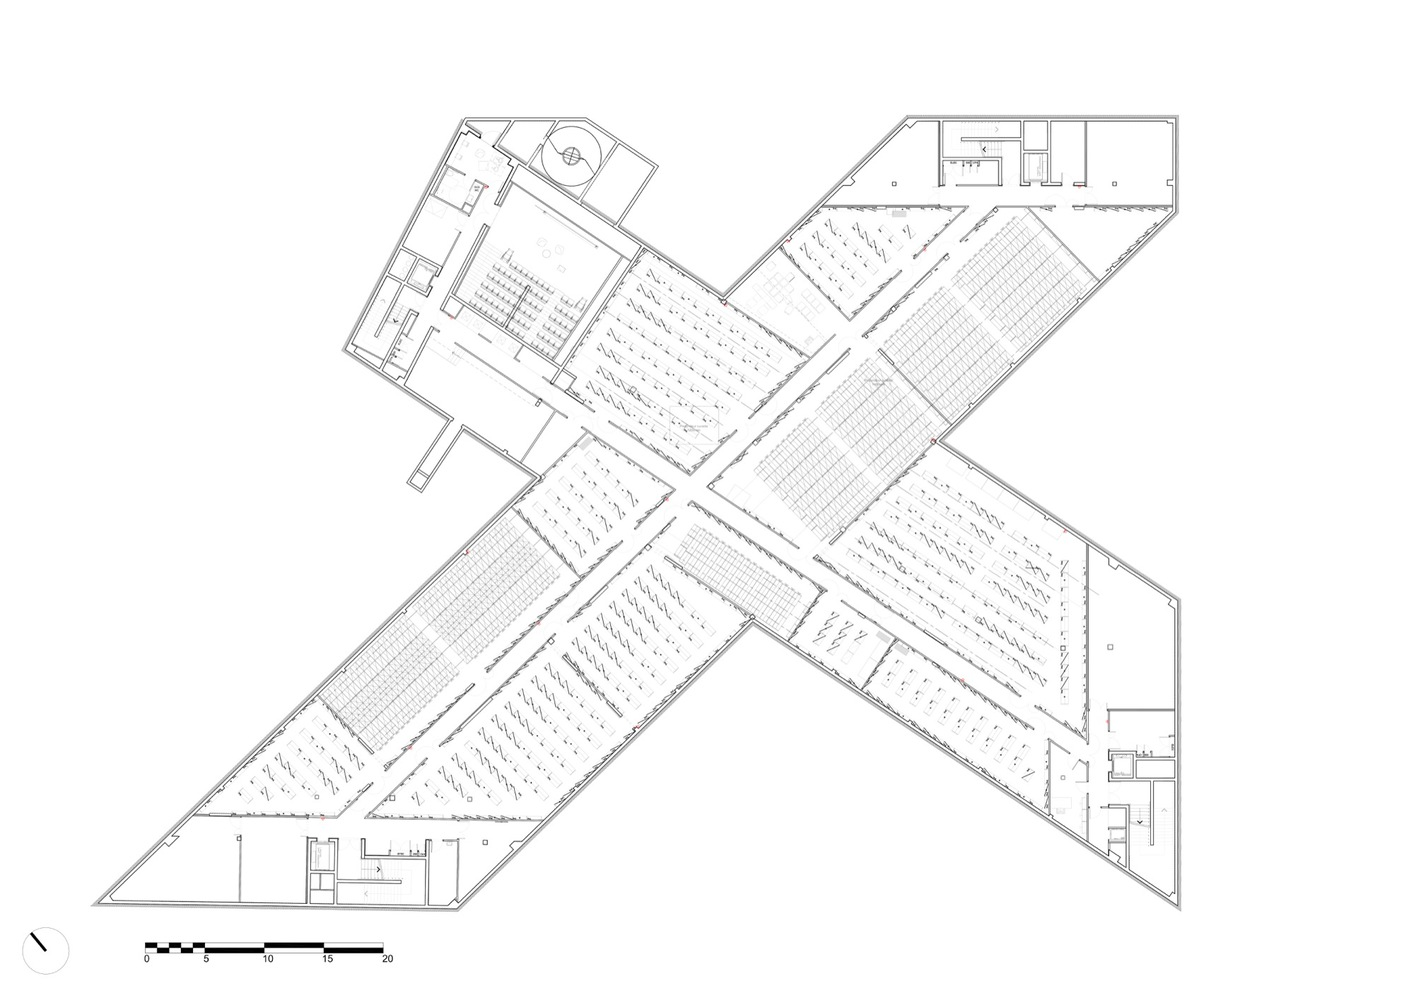 Plan For 28 Feet By 32 Feet Plot  Plot Size 100 Square Yards  Plan Code 1311 as well Alexis Floor Plan together with 3 Bedroom House besides Simple Floor Plan With 2 Bedrooms additionally Plan For 24 Feet By 60 Feet Plot  Plot Size160 Square Yards  Plan Code 1313. on 100 square yard house plans